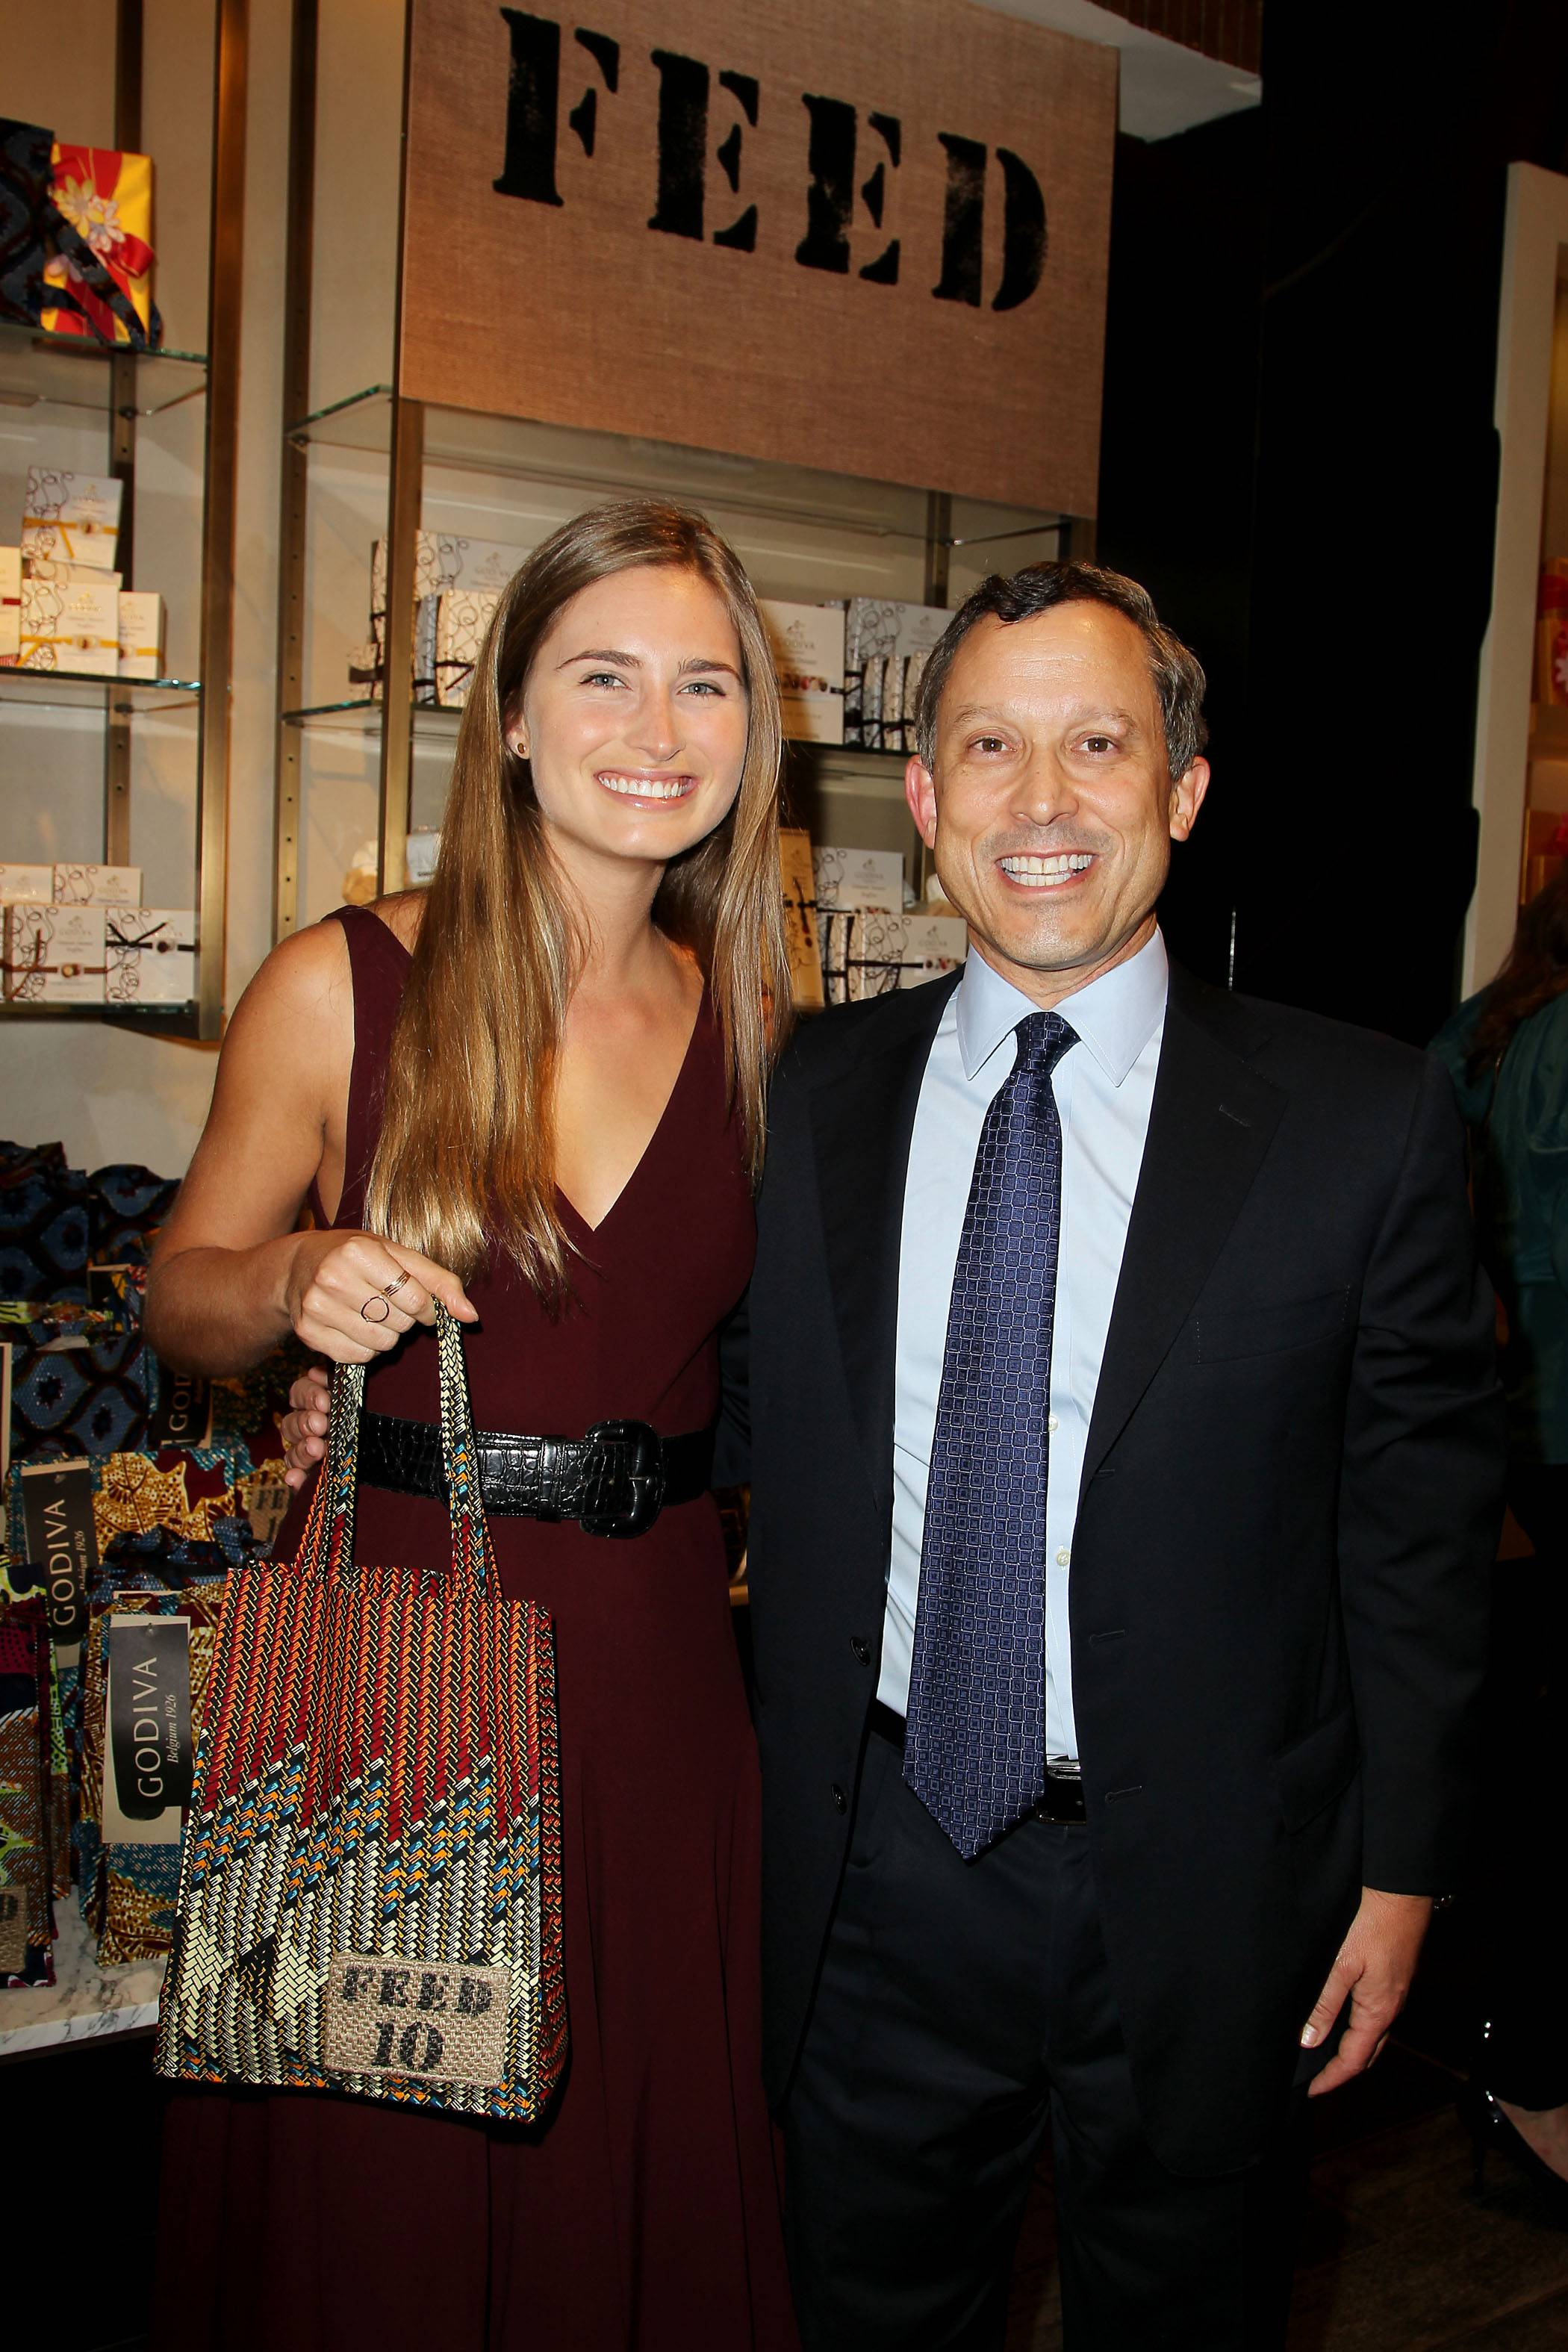 Lauren Bush Lauren and Jim Goldman (Godiva CEO)